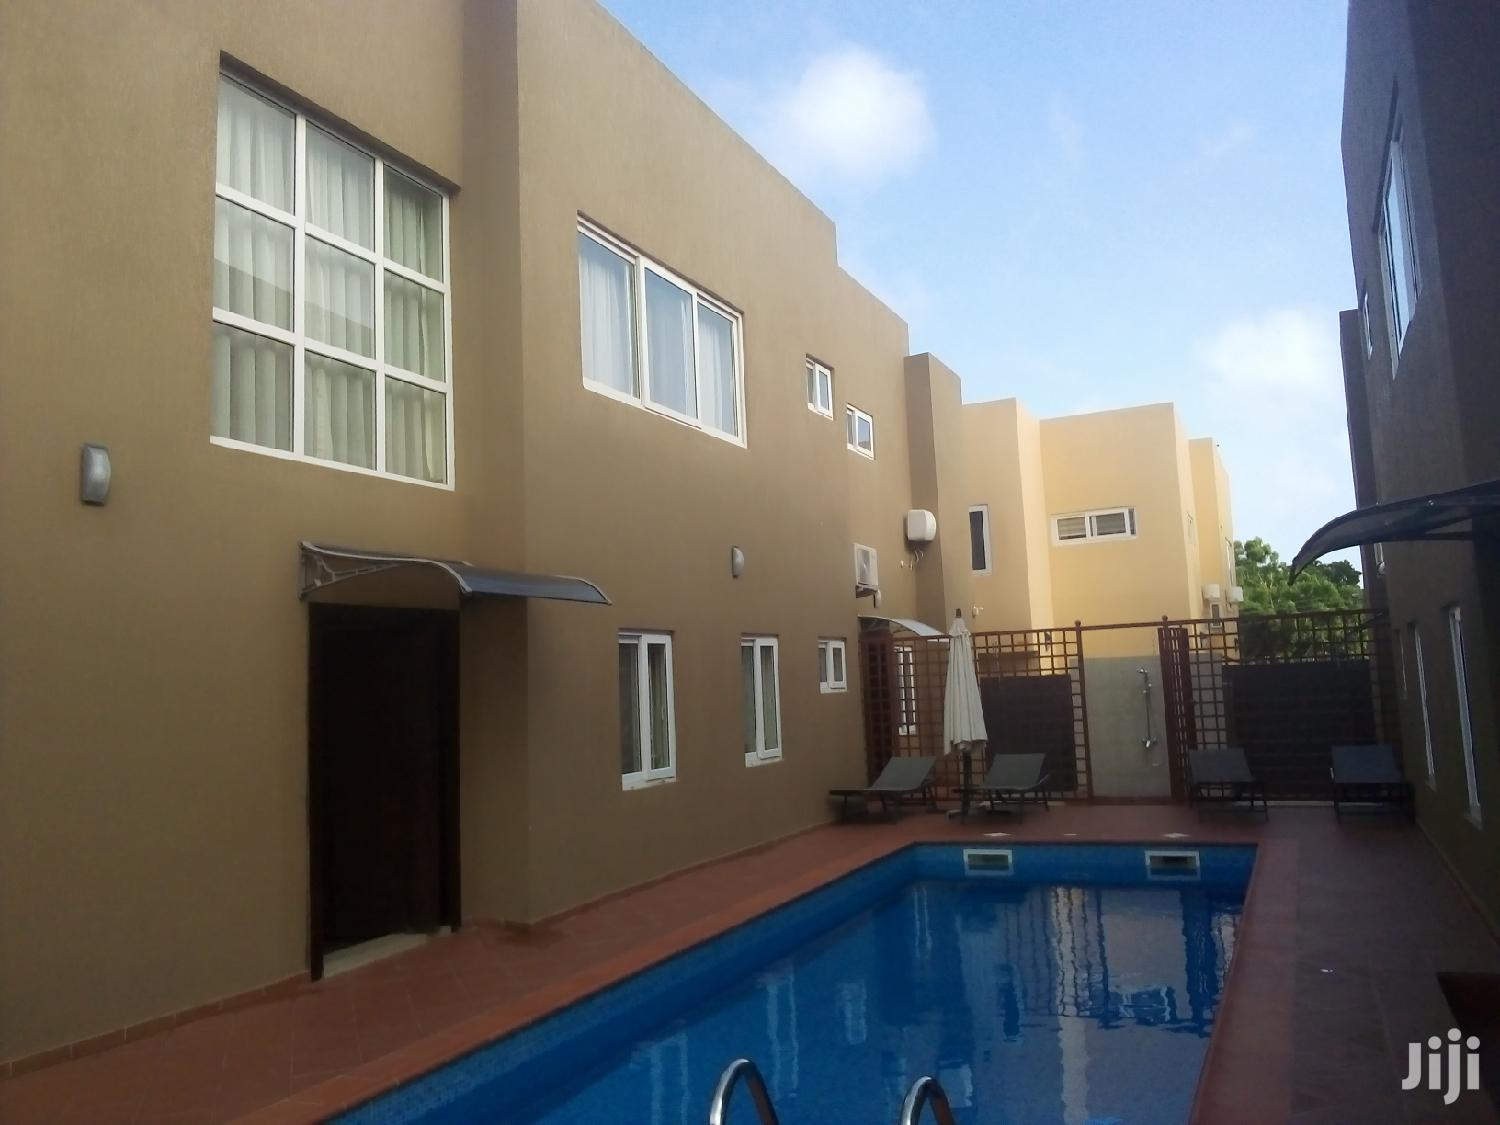 4 Bedrooms At Cantoment | Houses & Apartments For Rent for sale in Cantonments, Greater Accra, Ghana